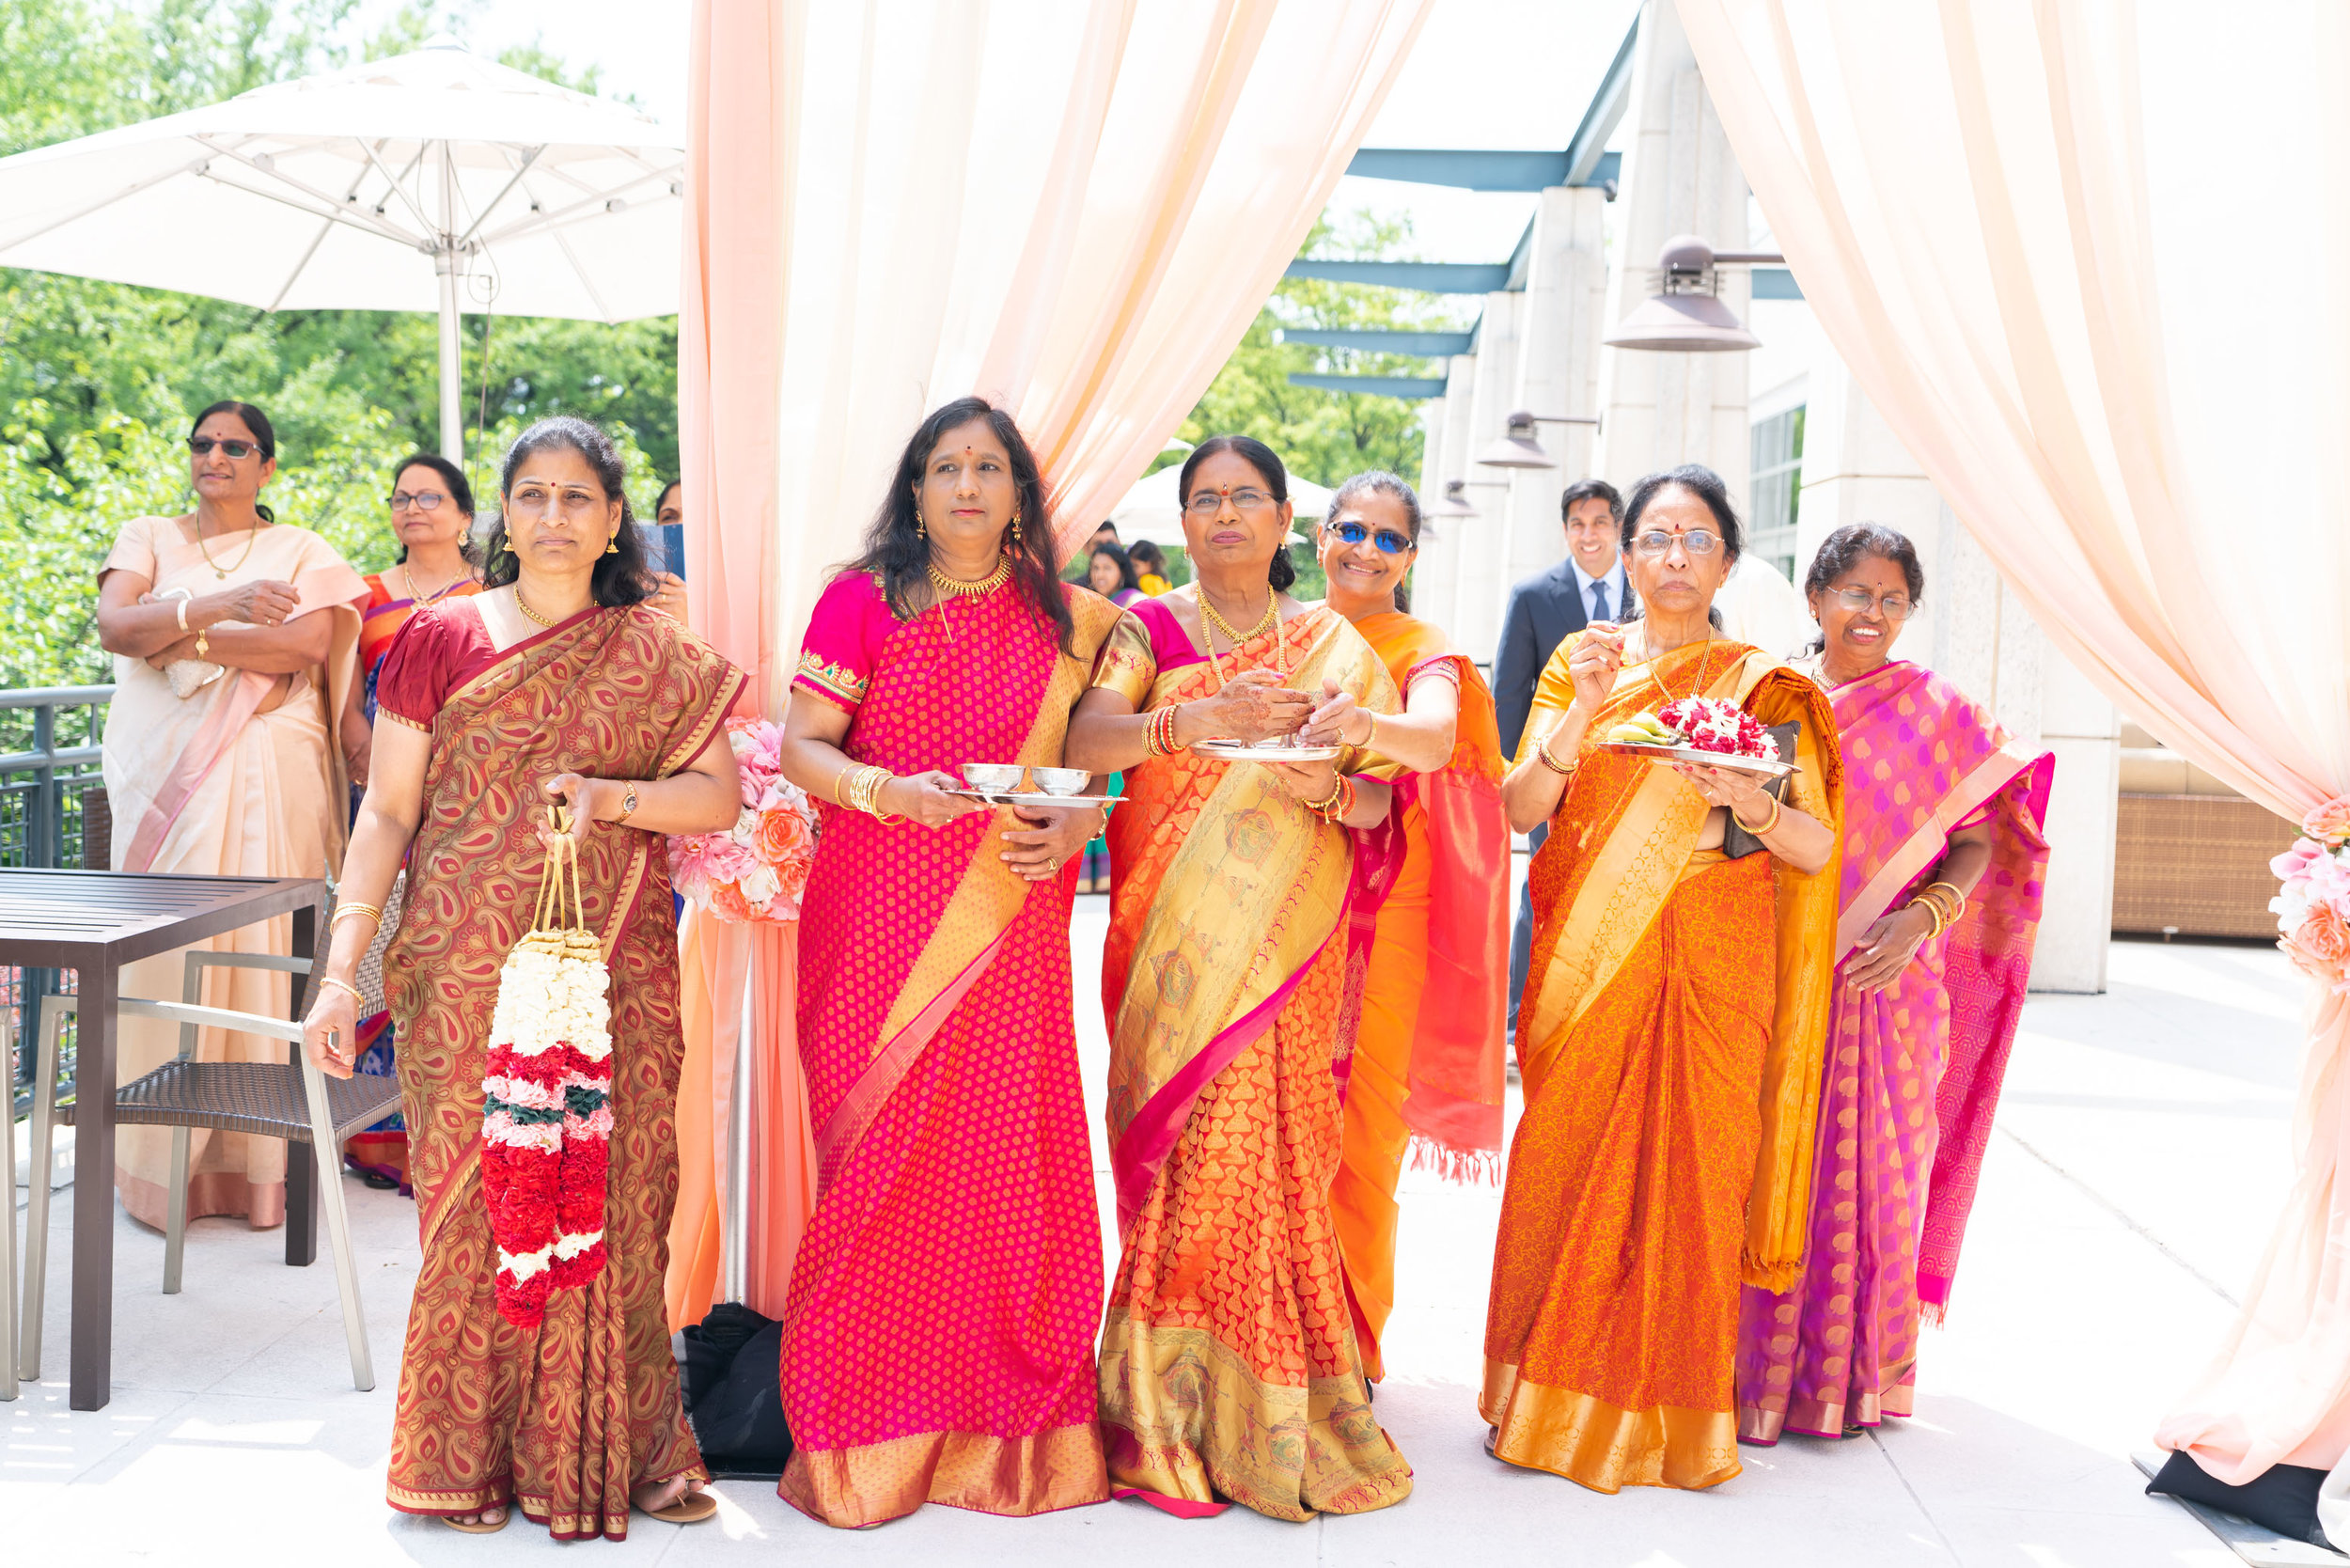 Indian mother and aunties waiting for the groom at the baraat